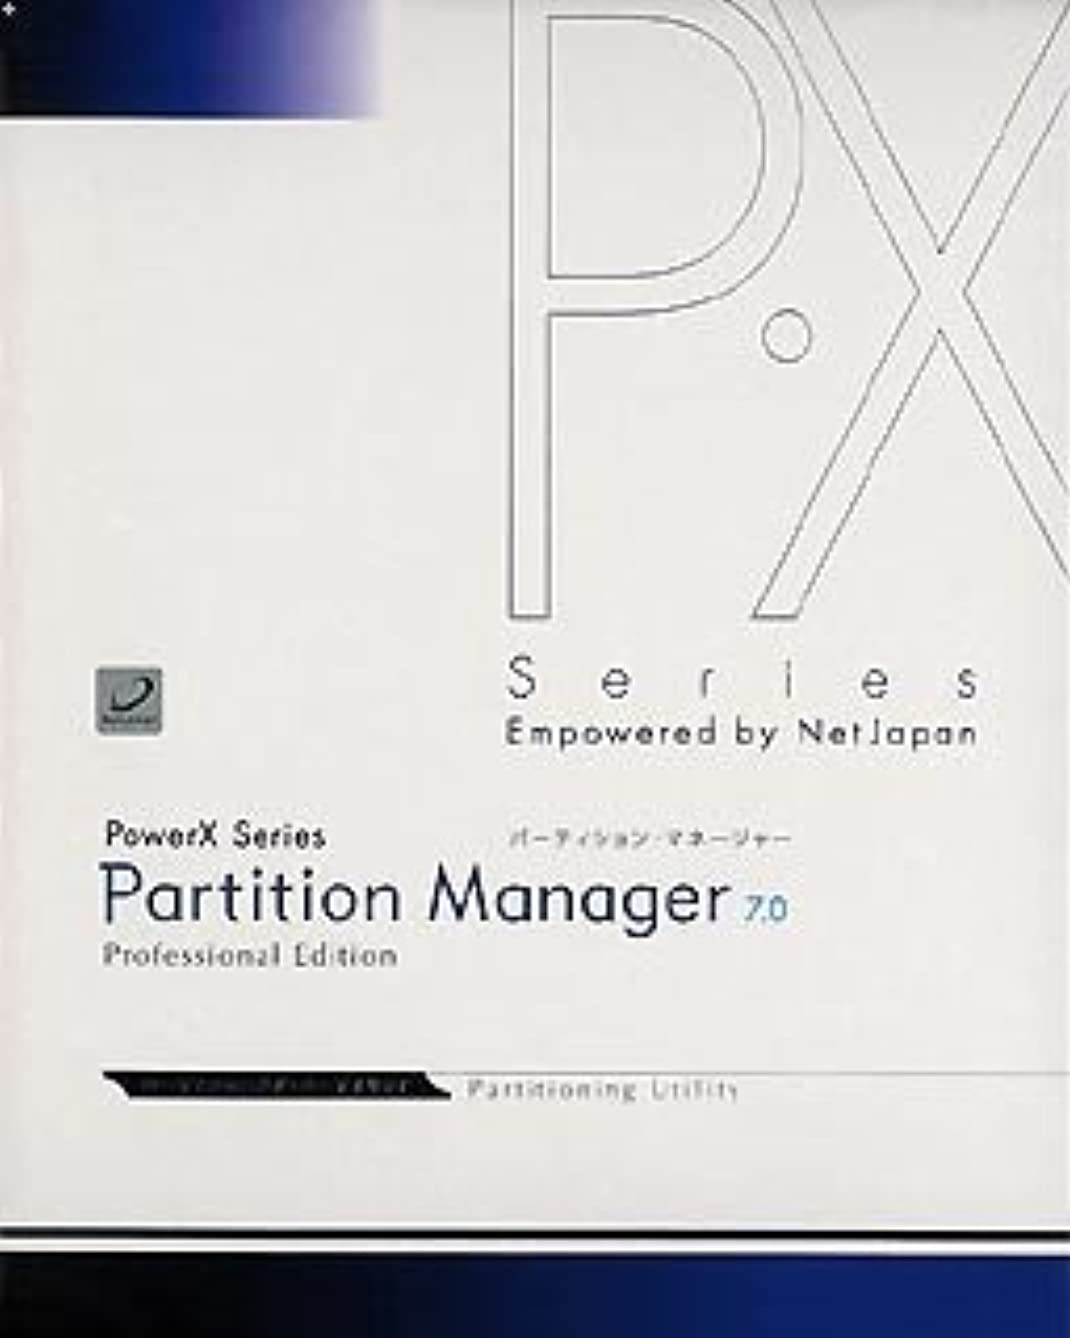 Partition Manager 7.0 Professional Edition